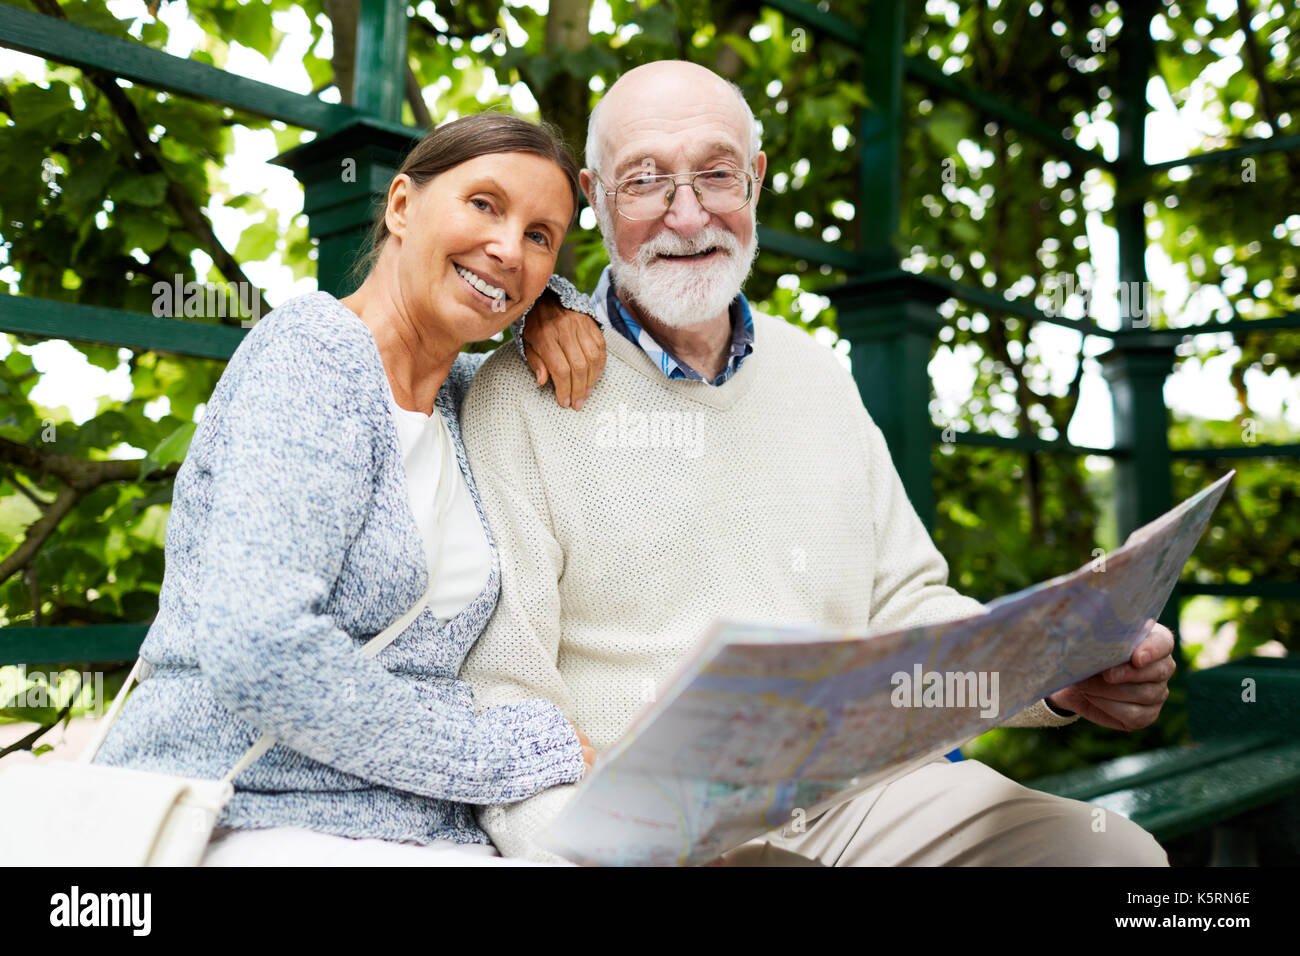 Seniors in park - Stock Image